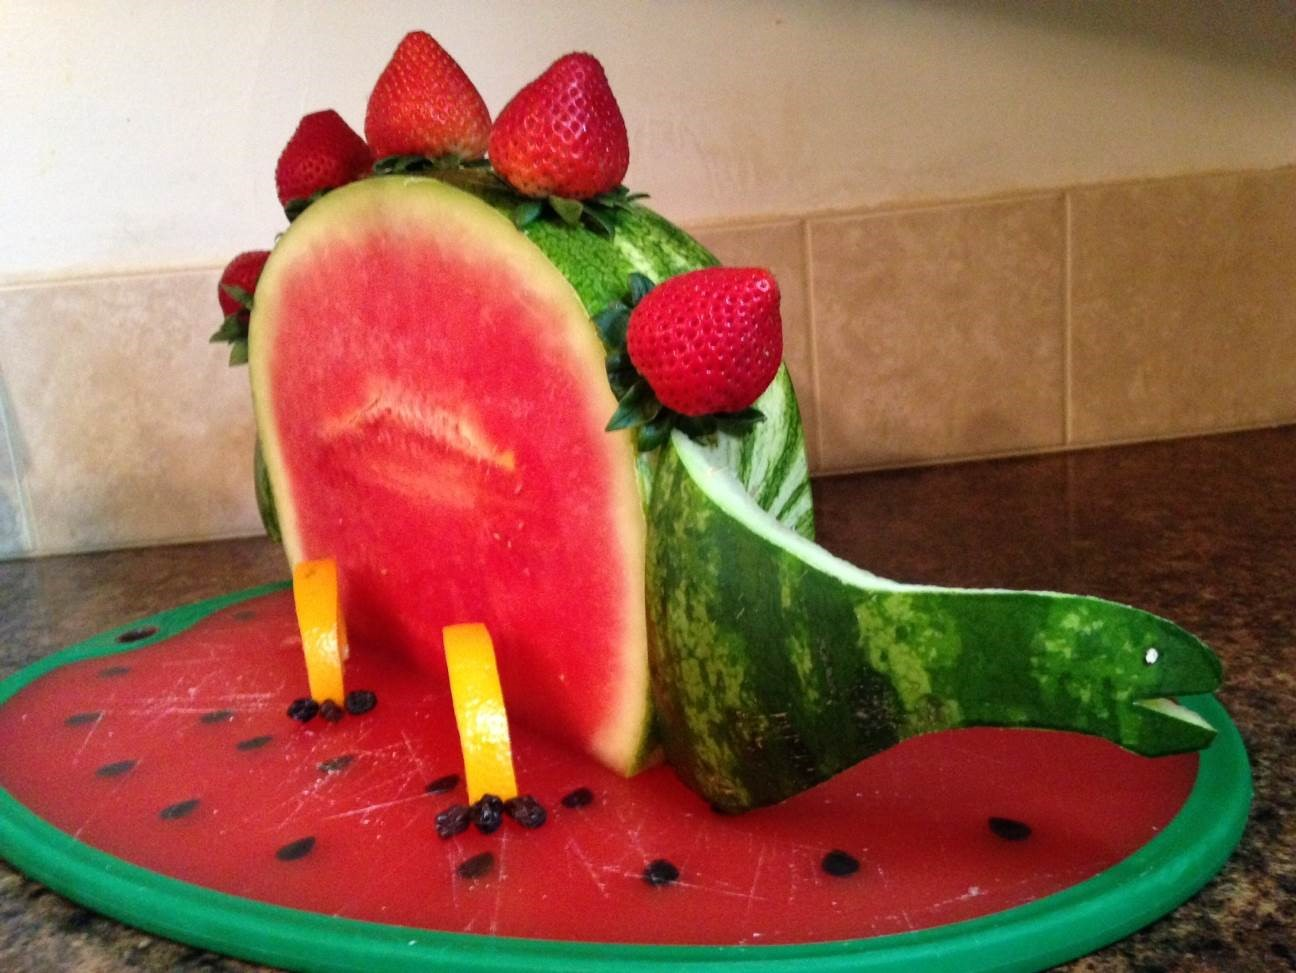 HOW ARE YOUR CARVING CONTEST ENTRIES COMING? - What About Watermelon?